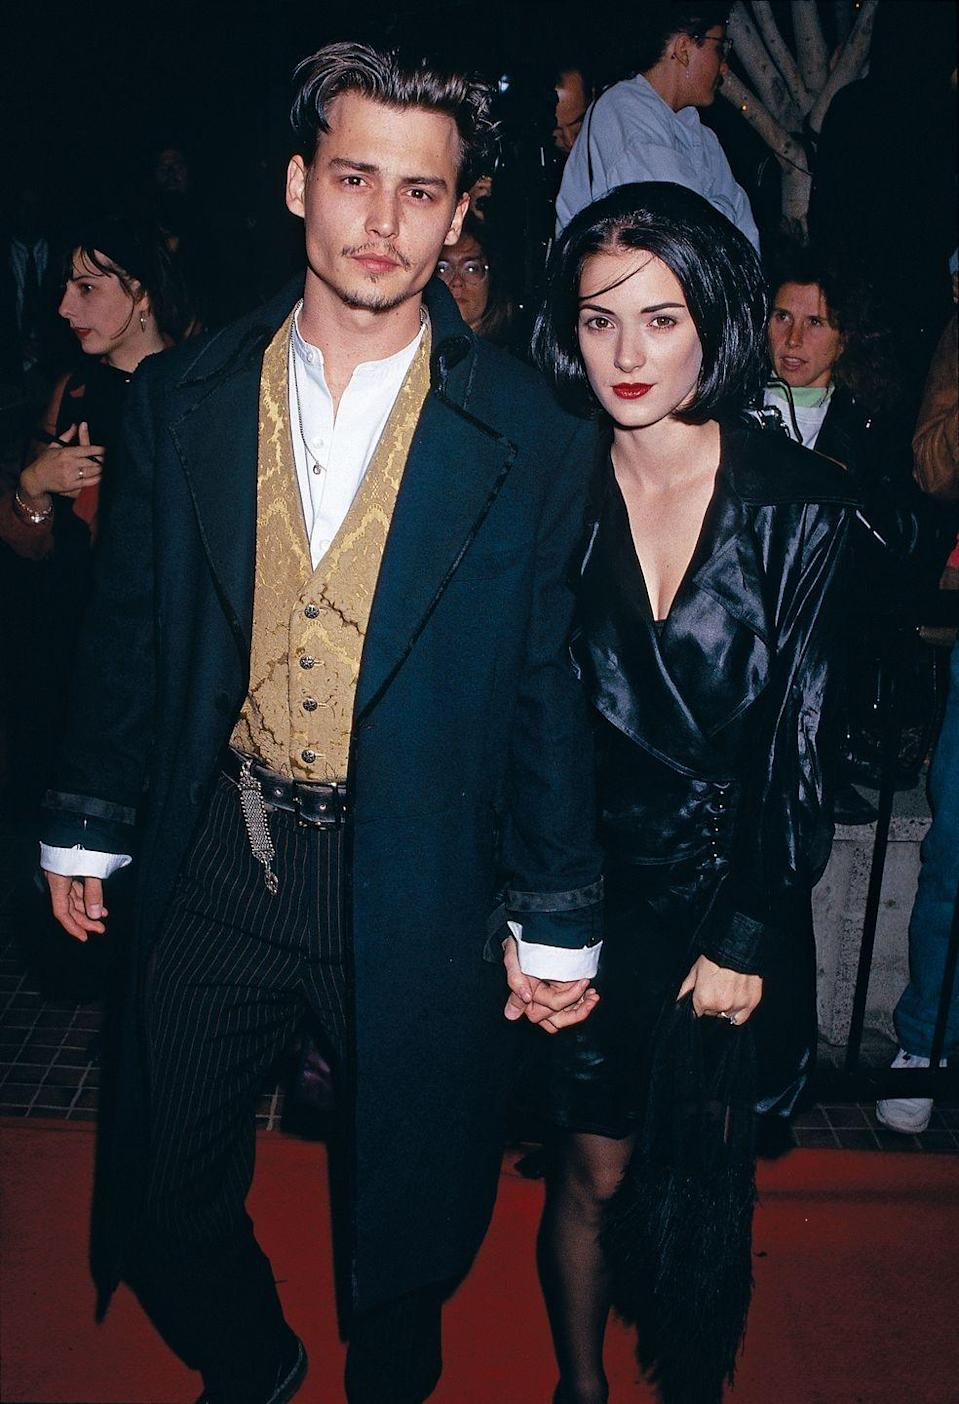 """<p>""""There's been nothing in my 27 years that's comparable to the feeling I have with Winona,"""" Depp <a href=""""http://people.com/celebrity/johnny-depp-and-winona-ryder-their-romance-and-relationship/"""" rel=""""nofollow noopener"""" target=""""_blank"""" data-ylk=""""slk:told"""" class=""""link rapid-noclick-resp"""">told </a><em><a href=""""http://people.com/celebrity/johnny-depp-and-winona-ryder-their-romance-and-relationship/"""" rel=""""nofollow noopener"""" target=""""_blank"""" data-ylk=""""slk:People"""" class=""""link rapid-noclick-resp"""">People</a></em> after meeting Ryder at a film premiere in 1990. The couple would go on to co-star in <em>Edward Scissorhands </em><span class=""""redactor-invisible-space"""">together and</span> <a href=""""http://people.com/archive/the-insider-vol-39-no-24/"""" rel=""""nofollow noopener"""" target=""""_blank"""" data-ylk=""""slk:got engaged five months later"""" class=""""link rapid-noclick-resp"""">got engaged five months later</a> but eventually split in June 1993. As a declaration of his love for the actress, Depp famously got a """"Winona Forever"""" tattoo (which he later changed to """"Wino Forever"""") </p>"""